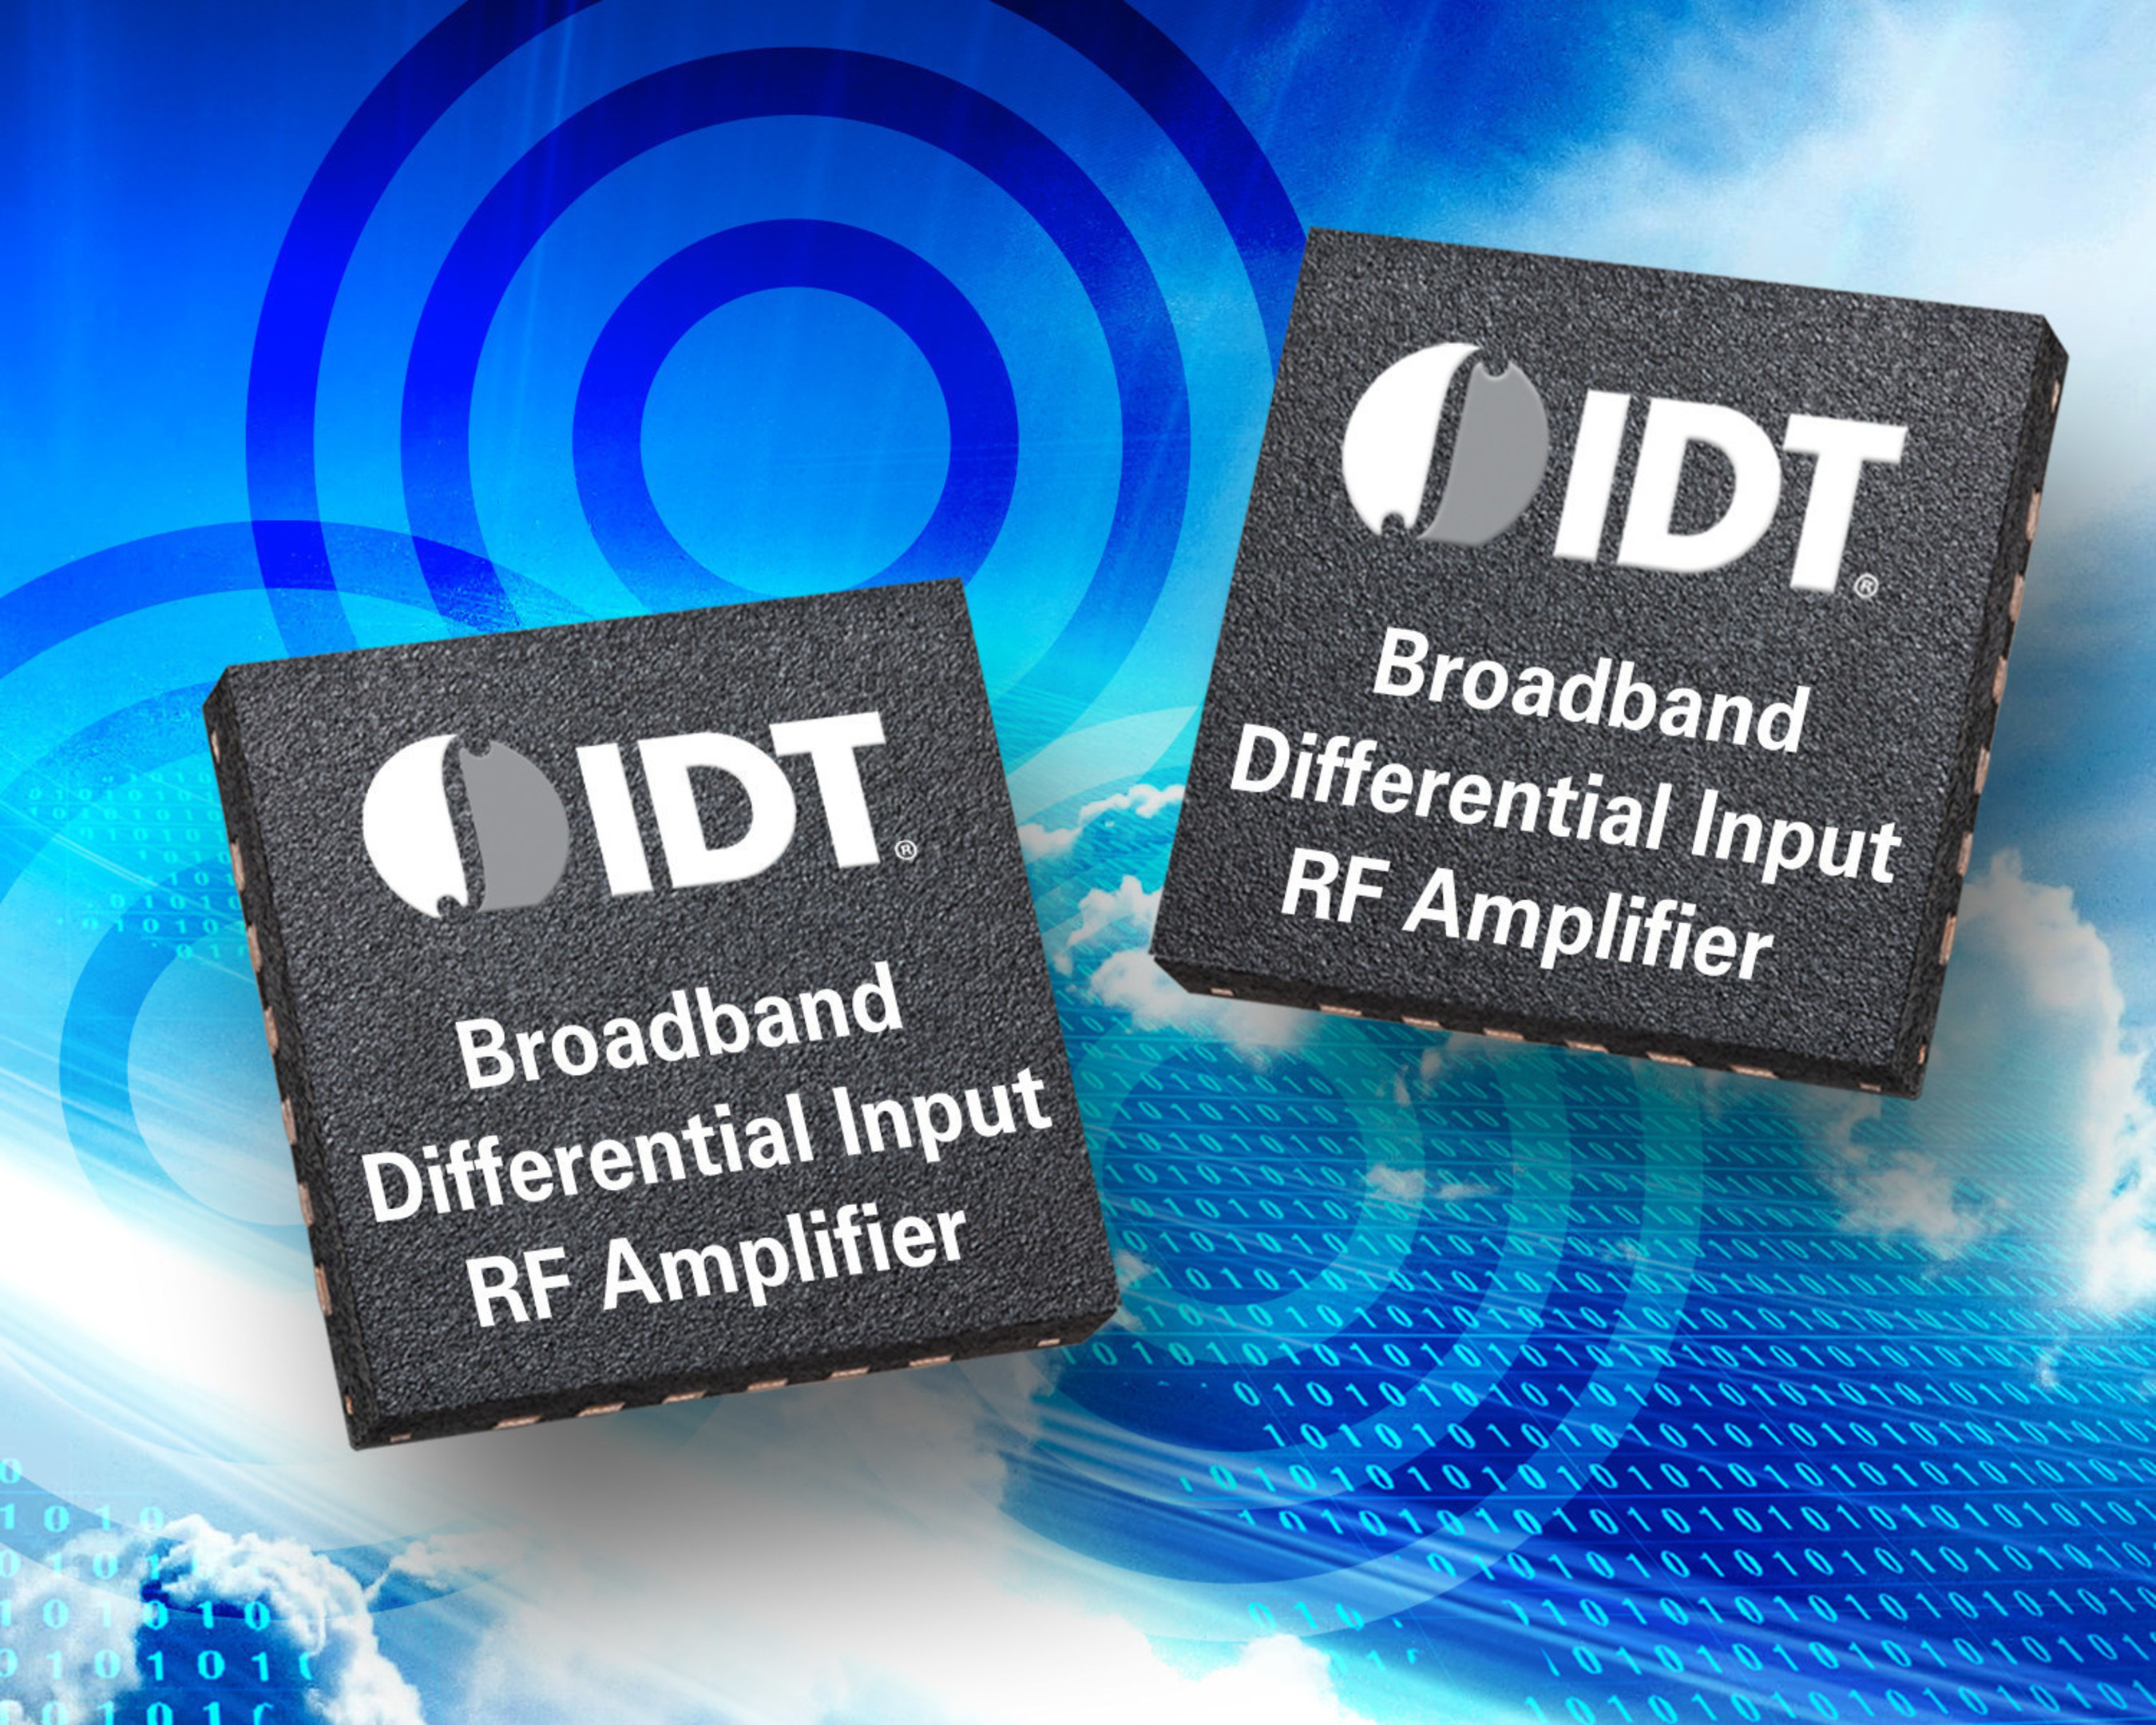 Idt Announces Broadband Differential Input Rf Amplifier Simplifying Mixed Signal Transceiver Dac And Integrated Based Designs